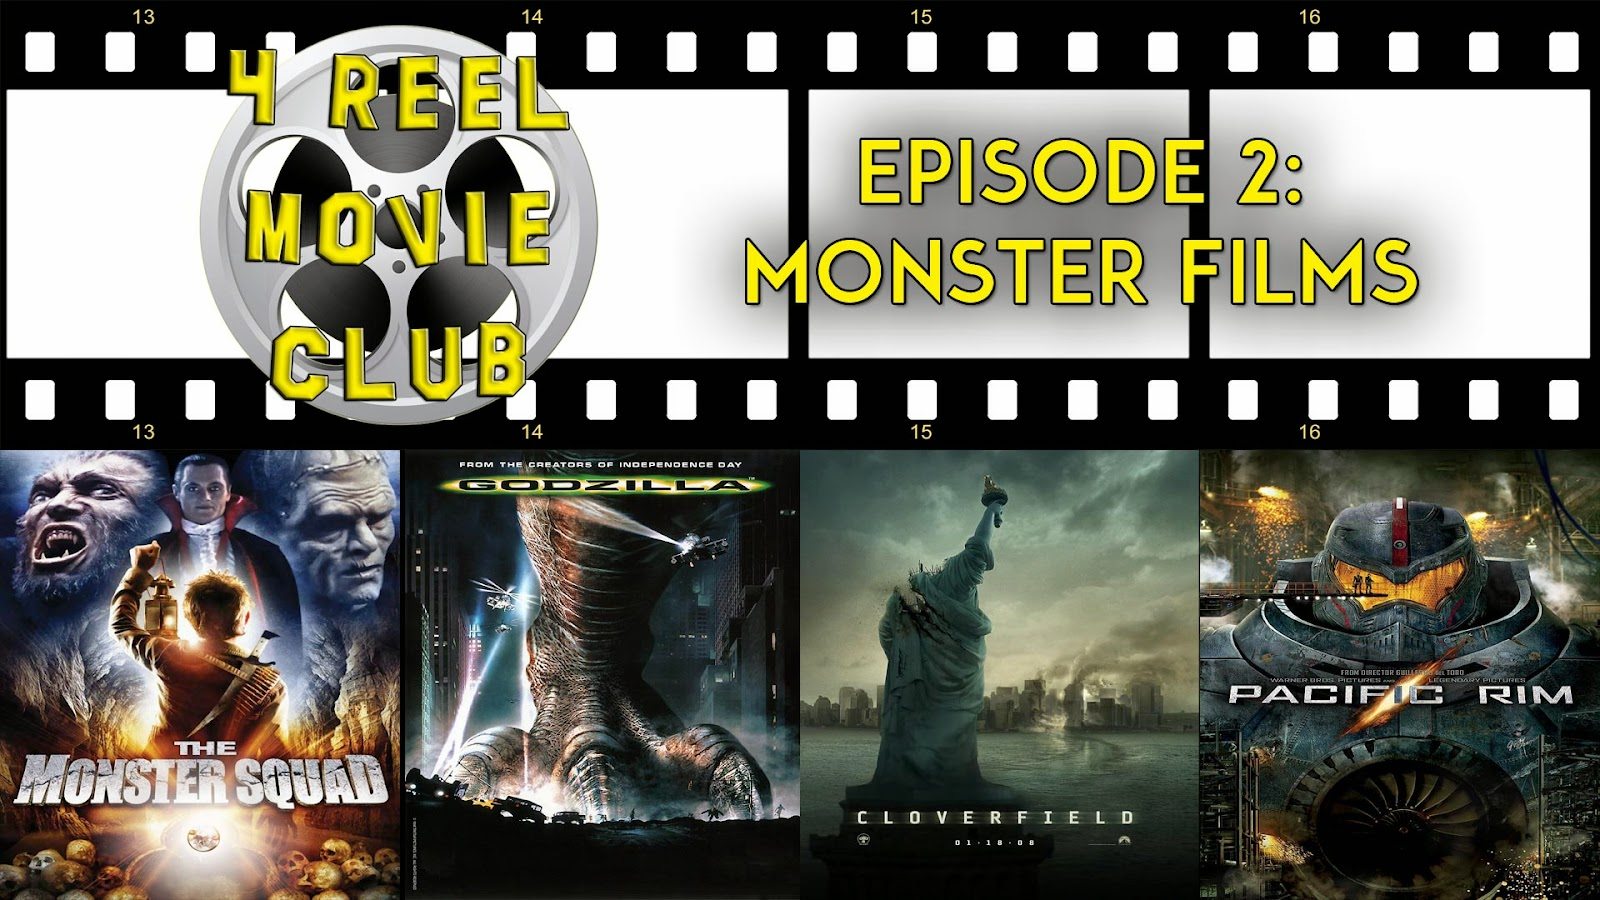 Monster Squad, Godzilla (1998), Cloverfield and Pacific Rim